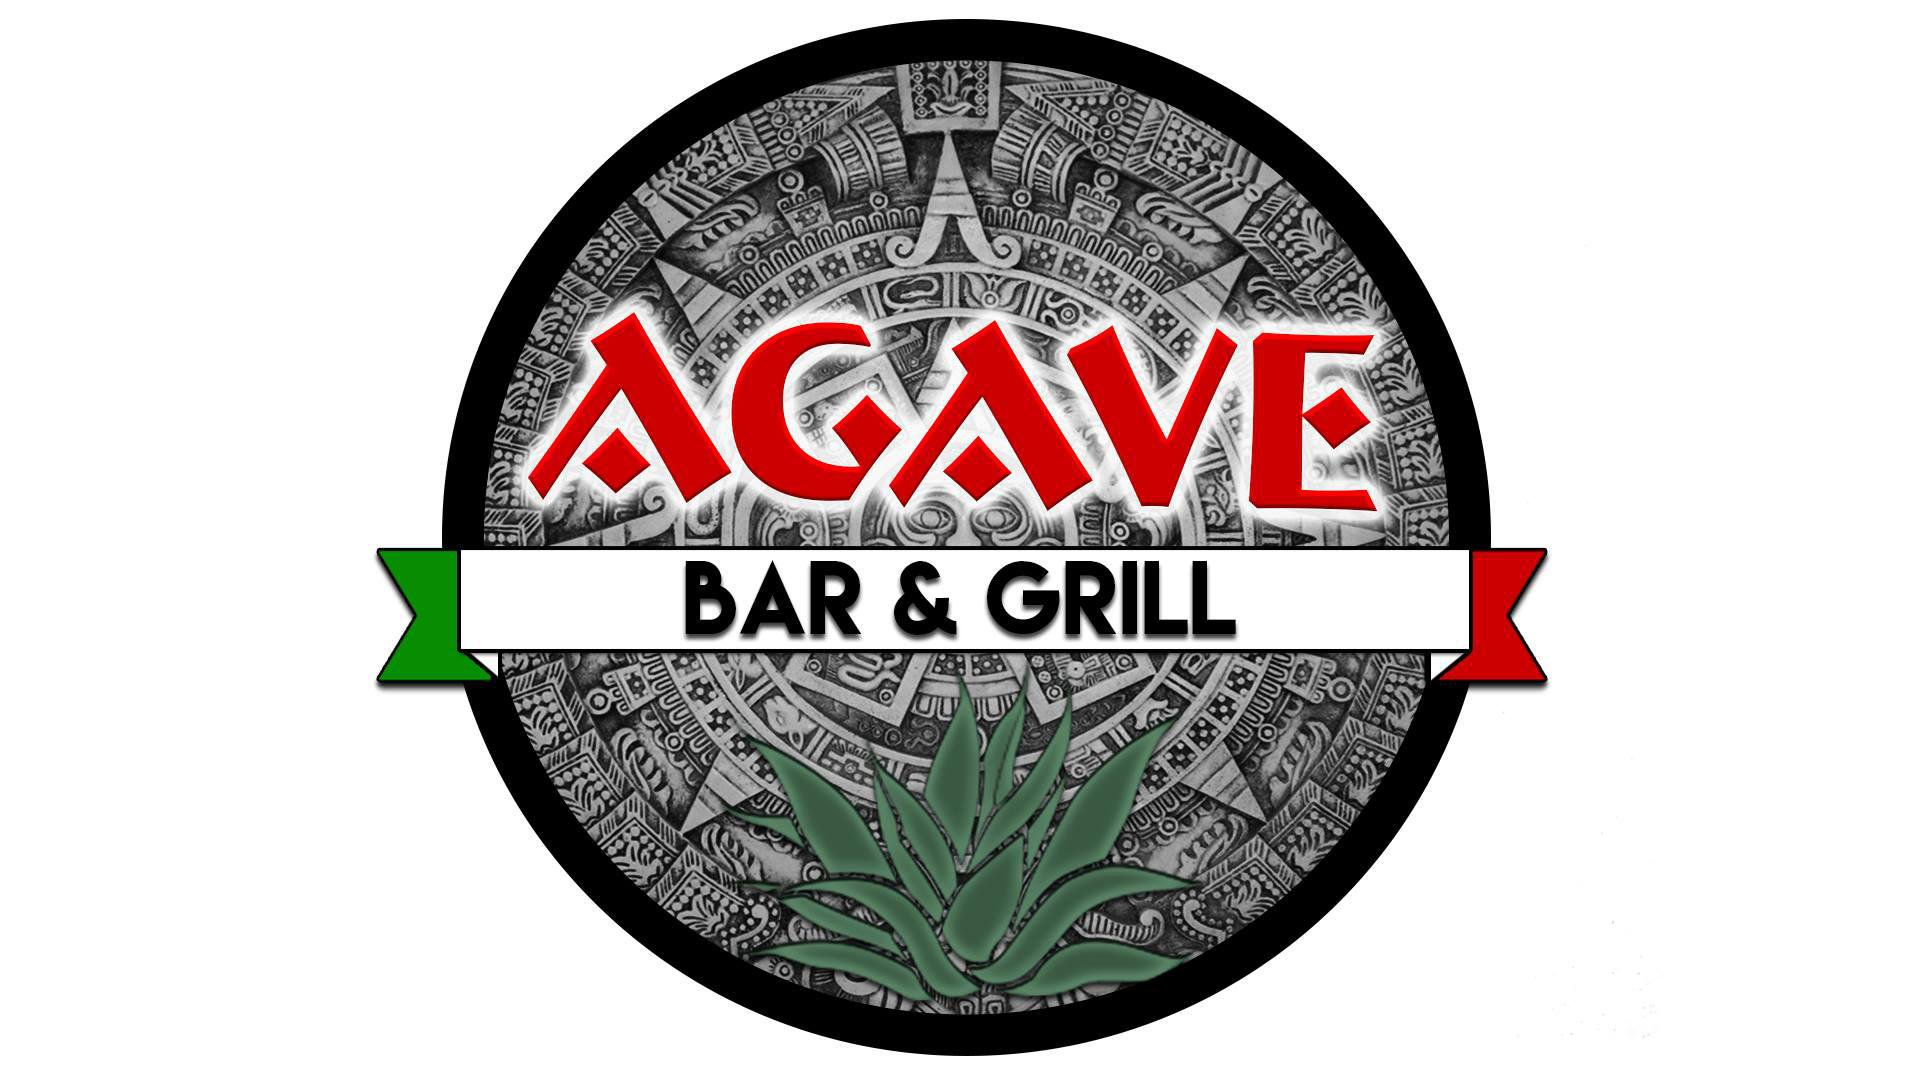 Agave Bar and Grill